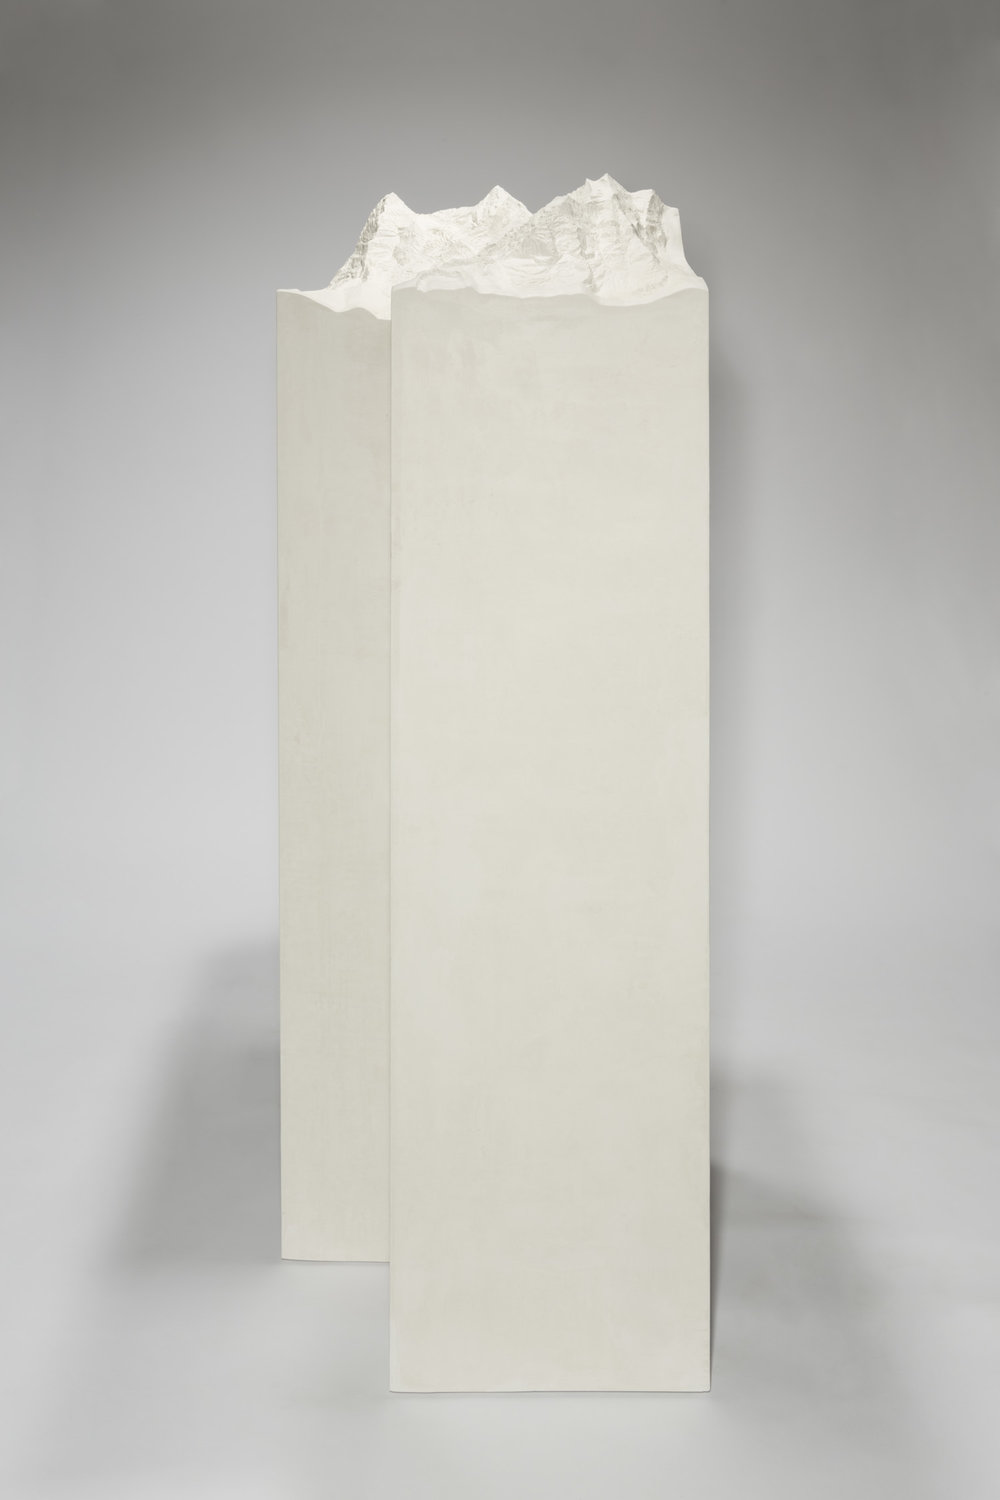 Mönch Jungfrau , 2013  Plaster and stucco  180 × 95 × 63 cm